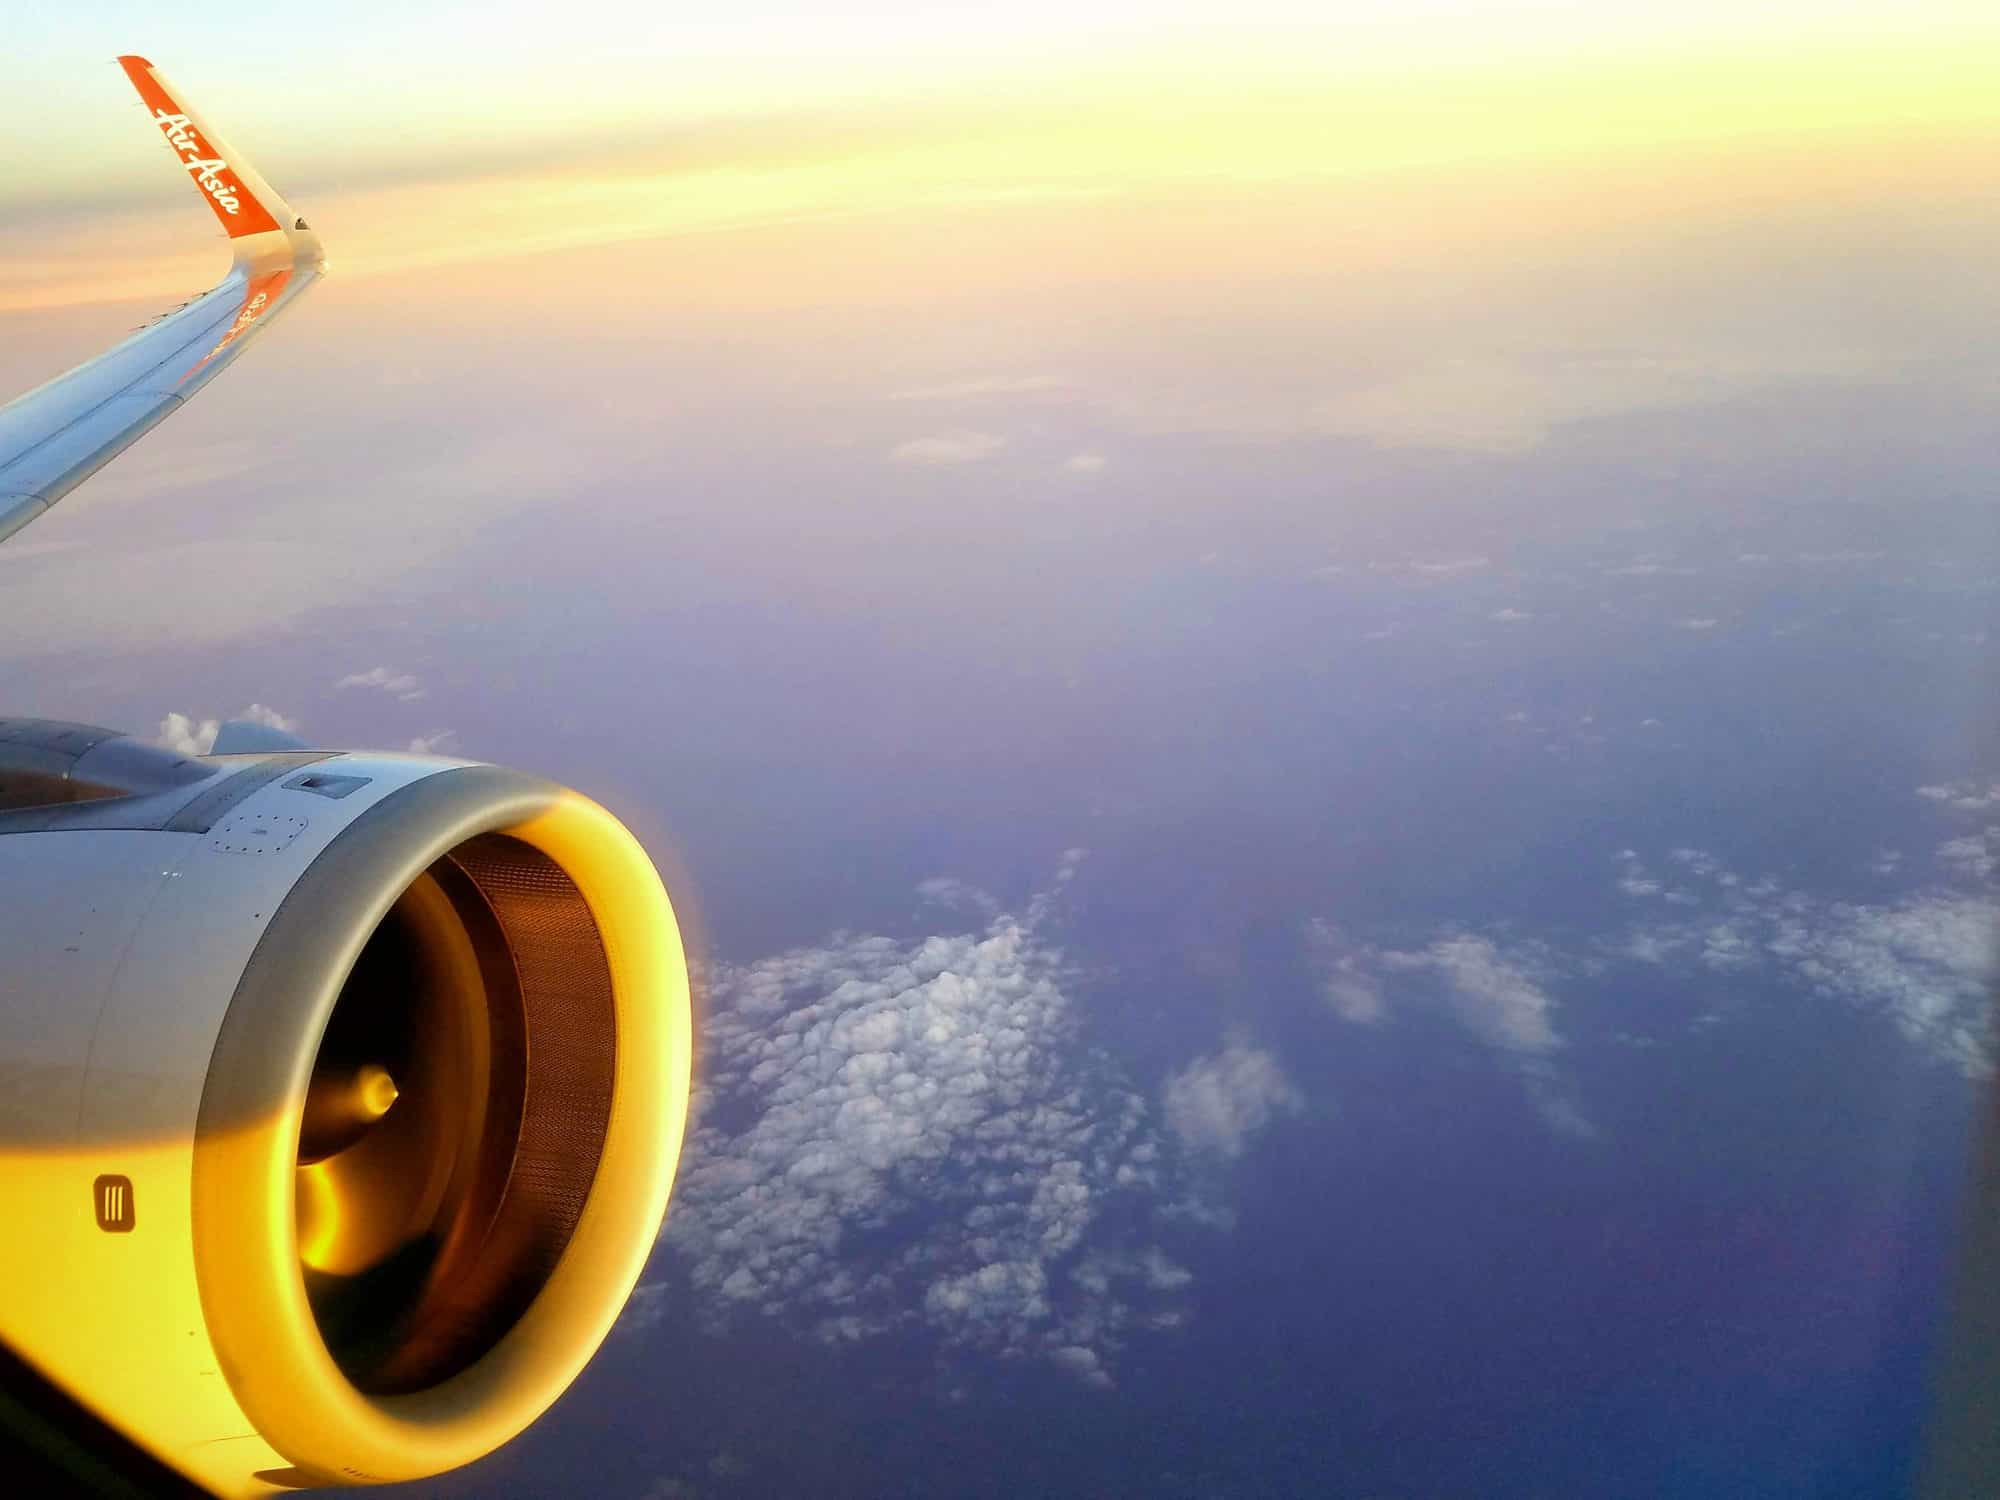 View out airplane window towards the engine at sunset